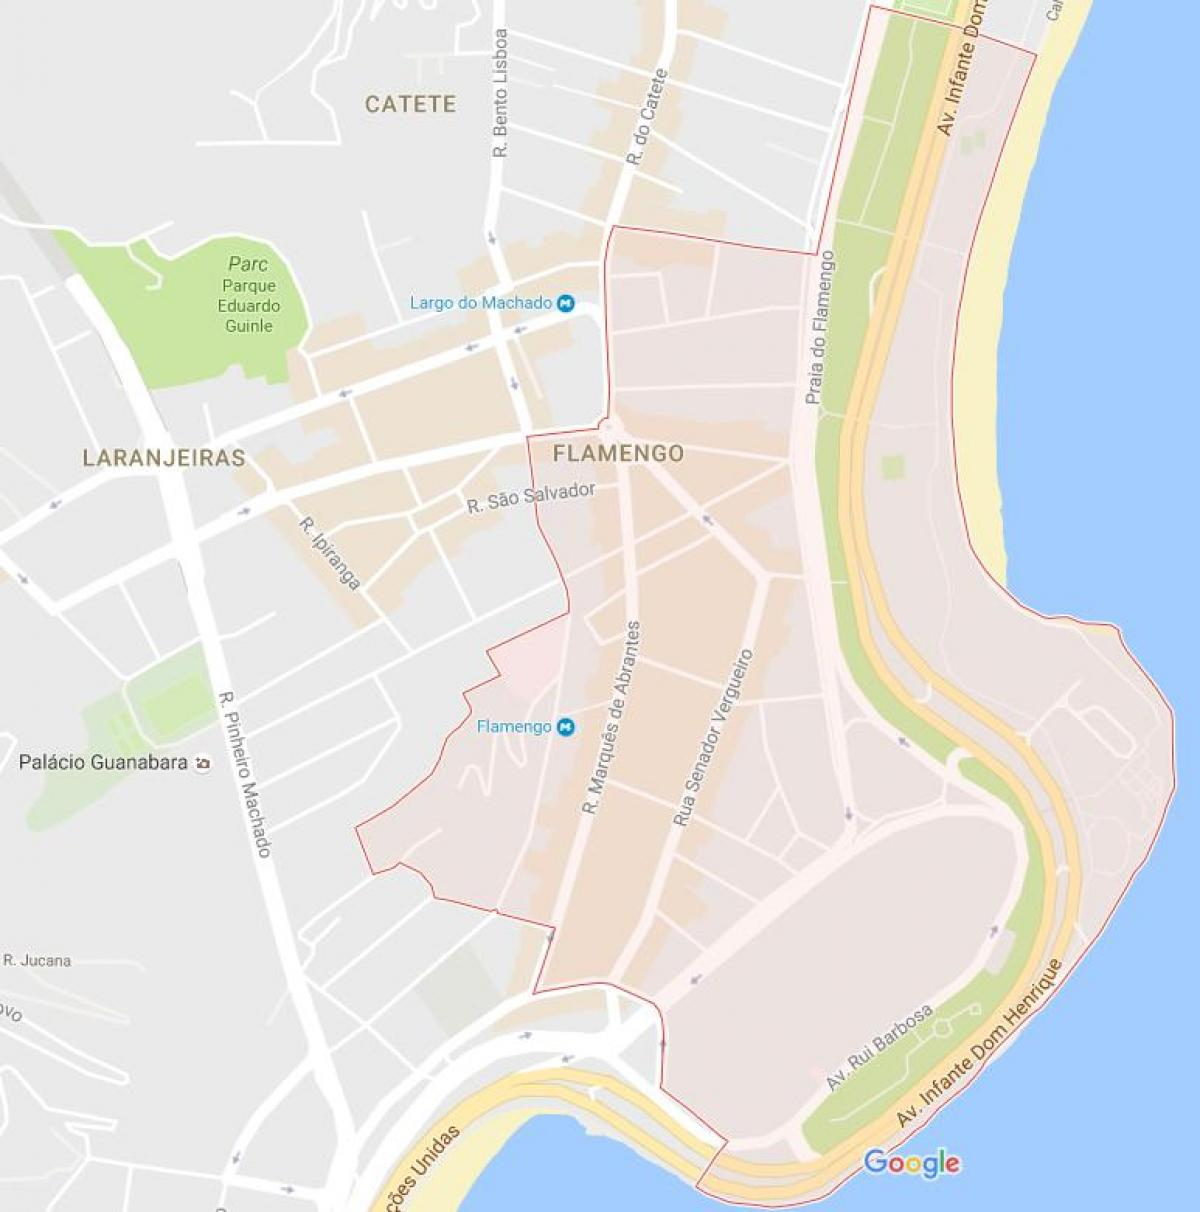 Map of Flamengo